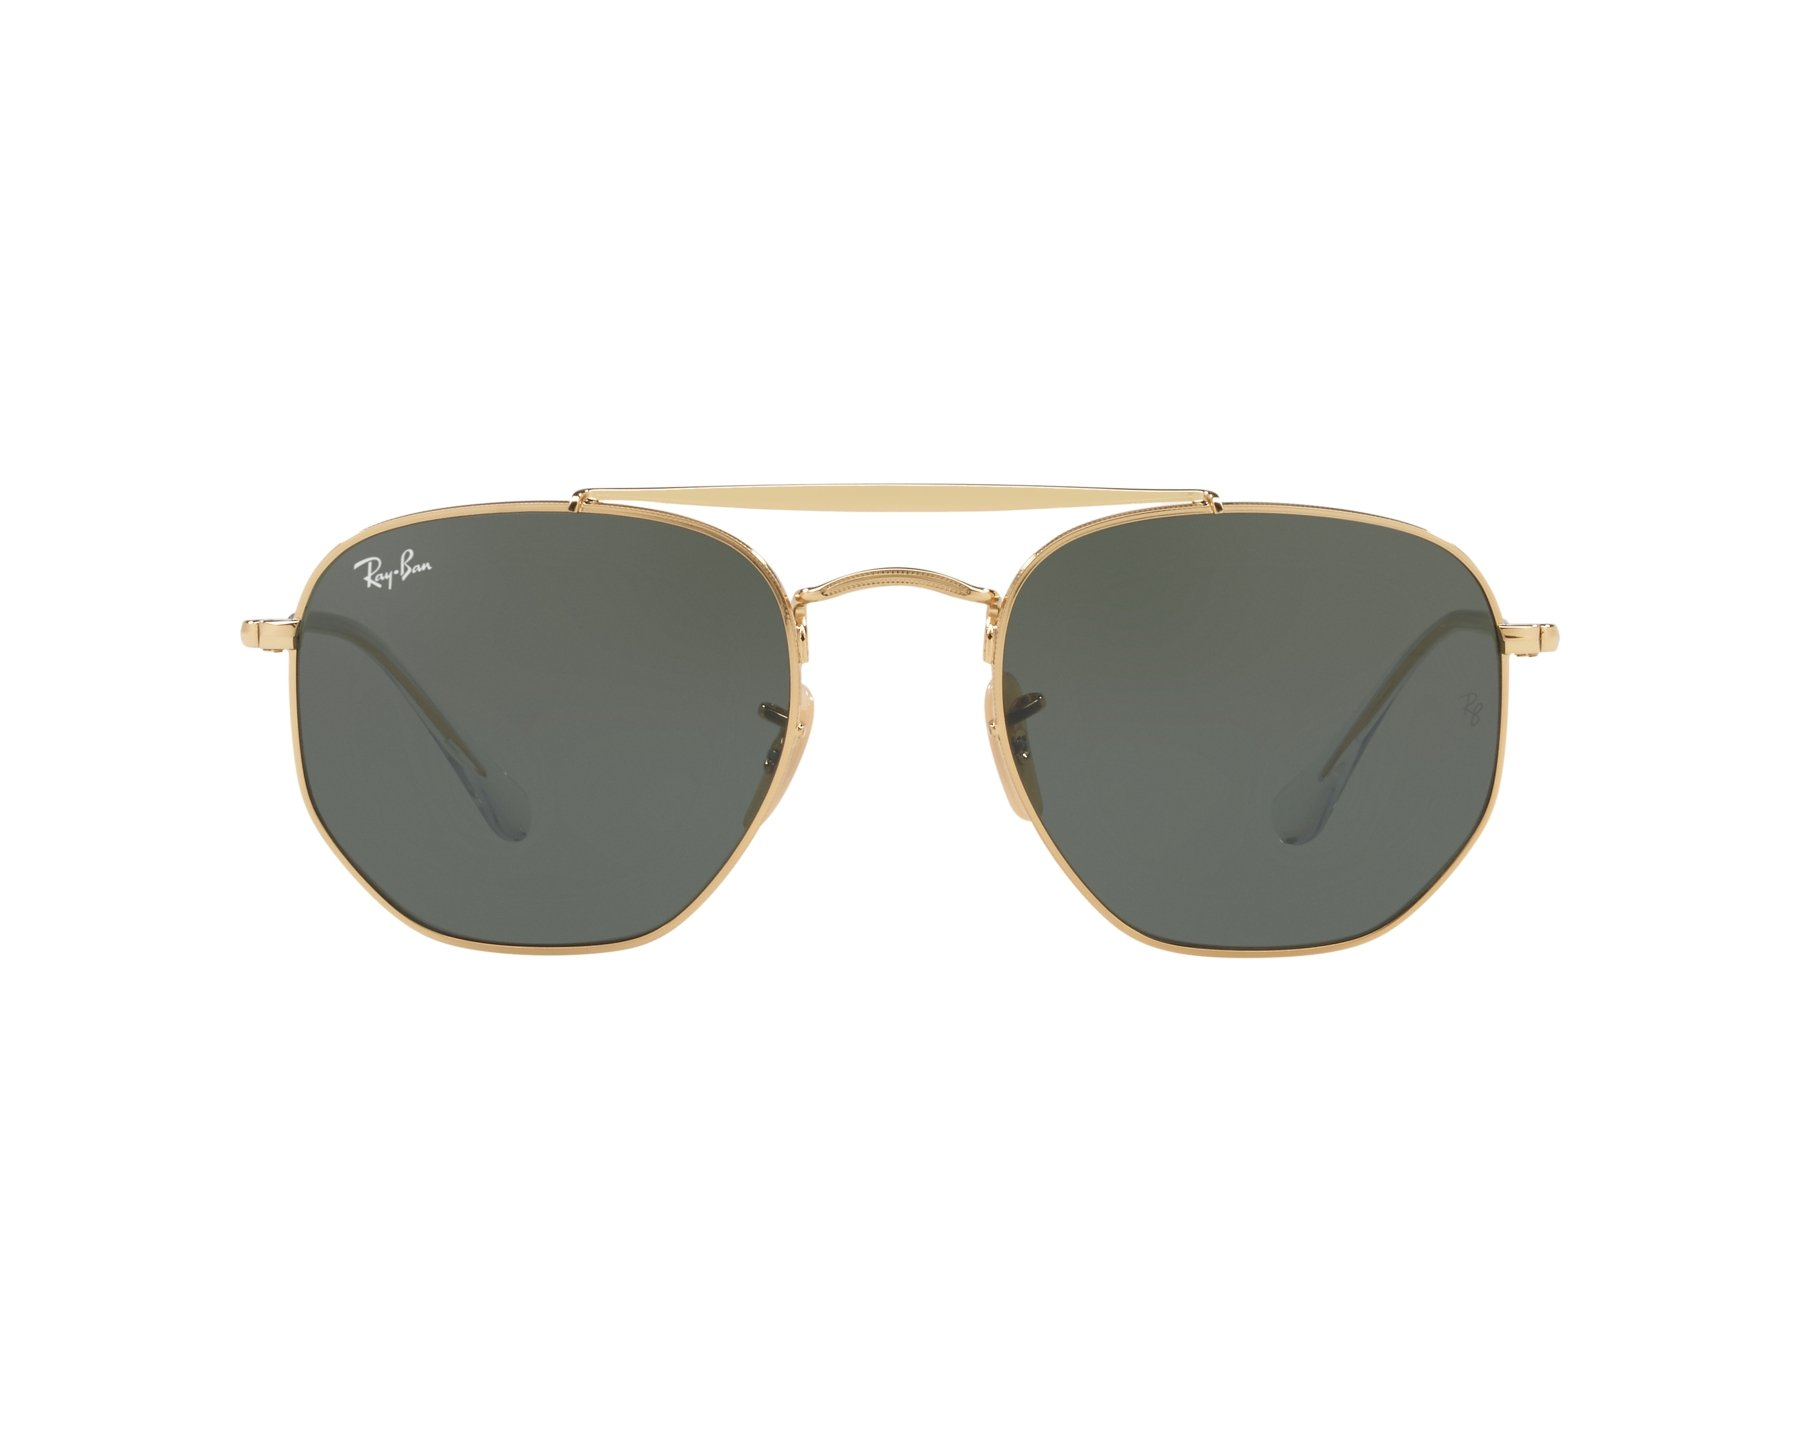 3611413bec23c Sunglasses Ray-Ban RB-3648 001 54-21 Gold 360 degree view 1